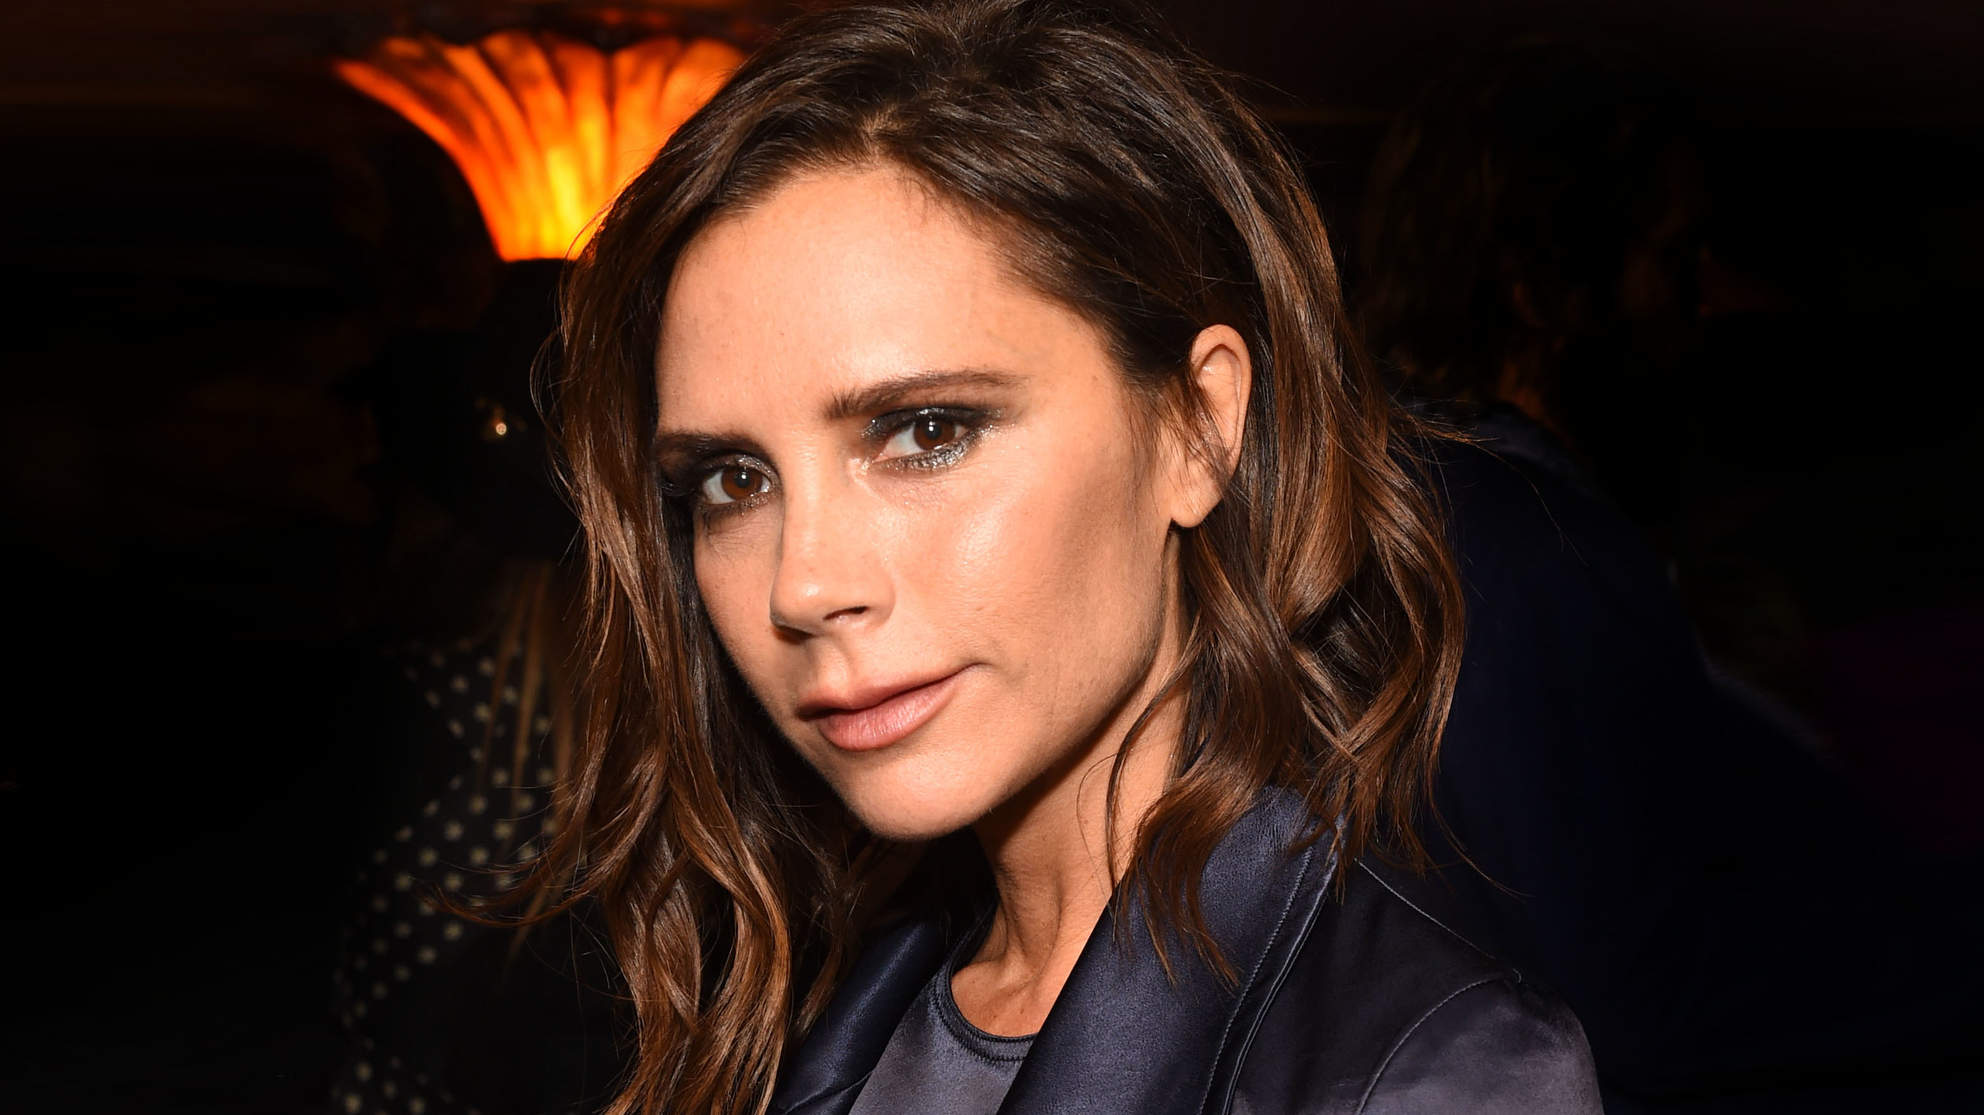 Victoria Beckham Reveals Her $1,635 Daily Beauty Regimen (Here's Where to Buy Every Single Product)